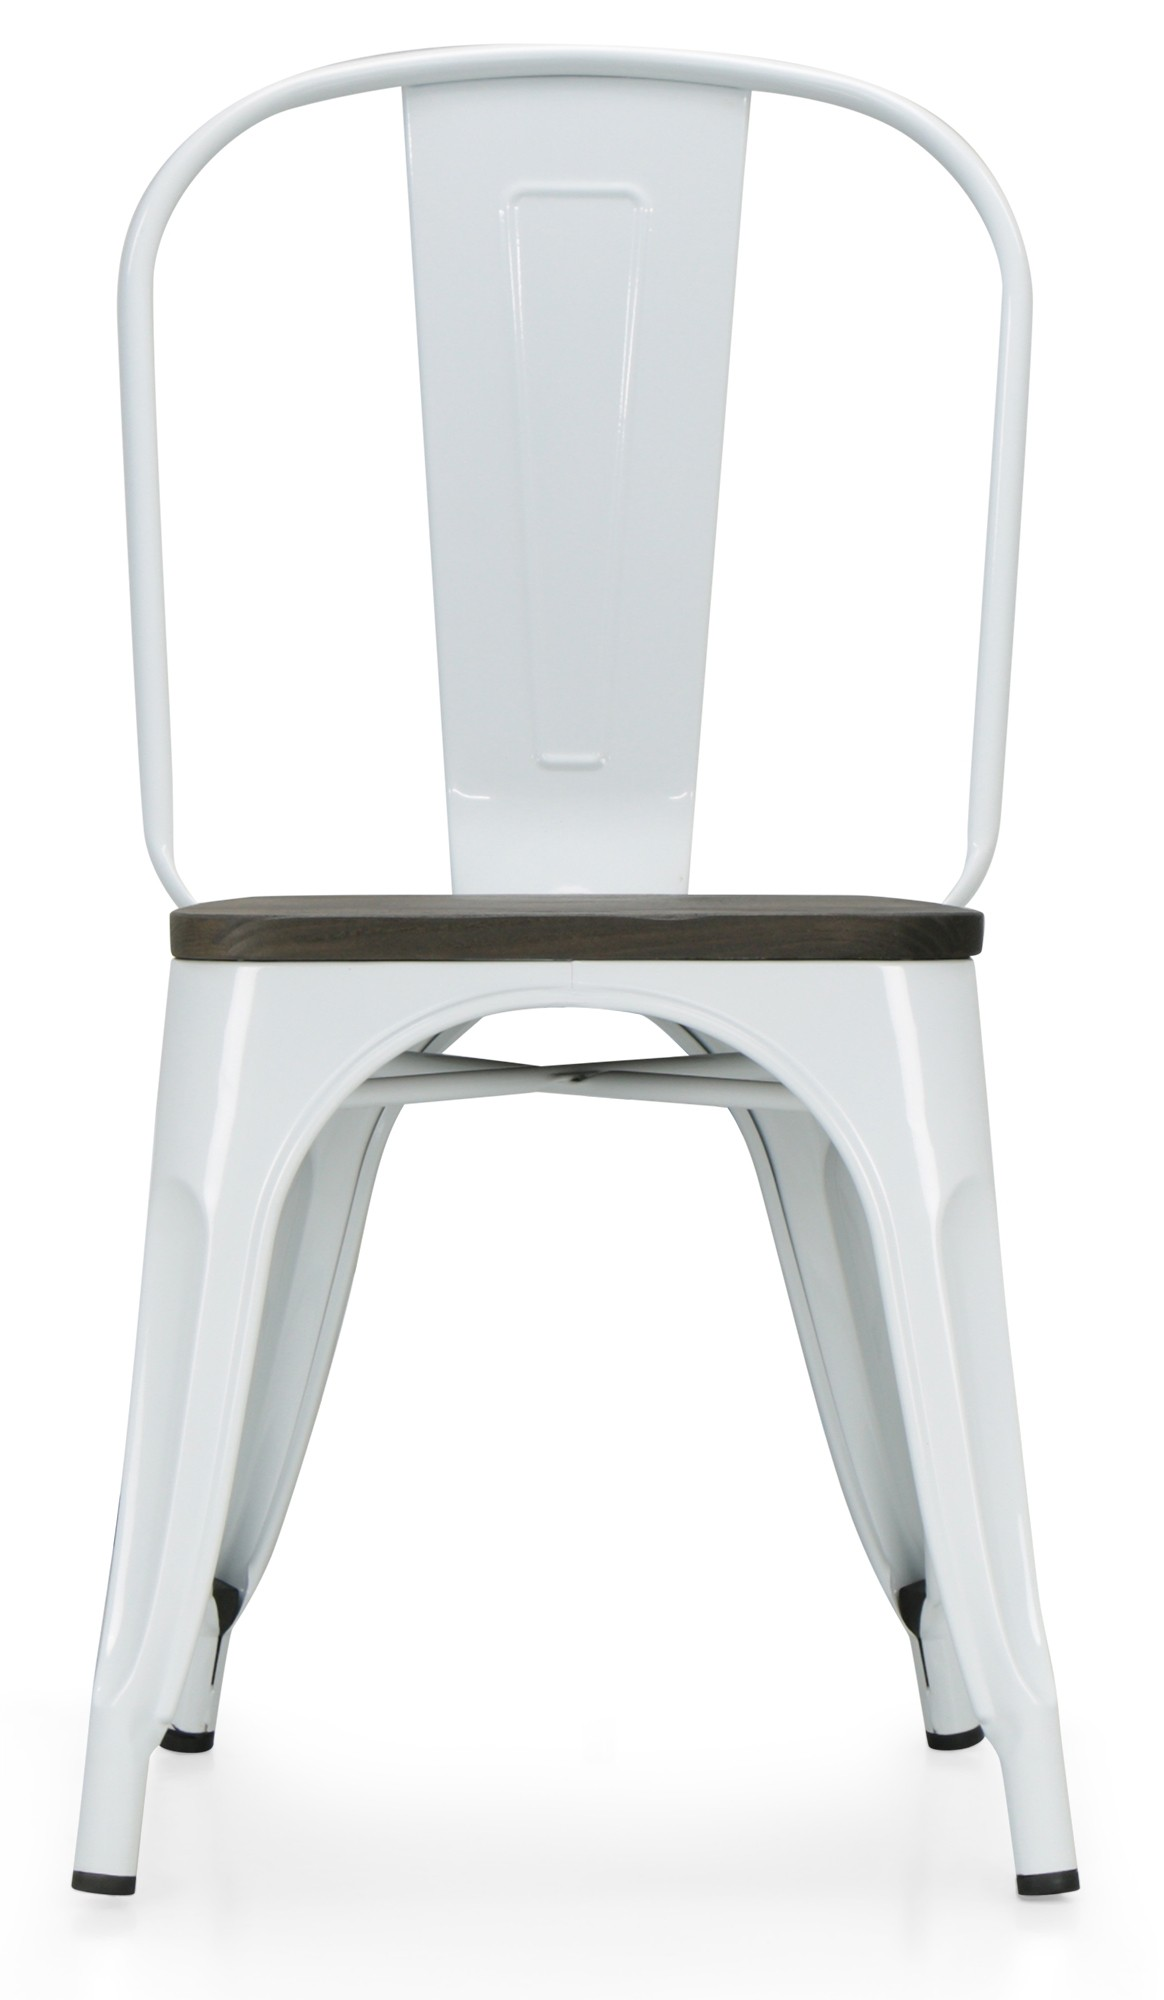 Retro Metal Chair With Wooden Seat White Dining Chairs